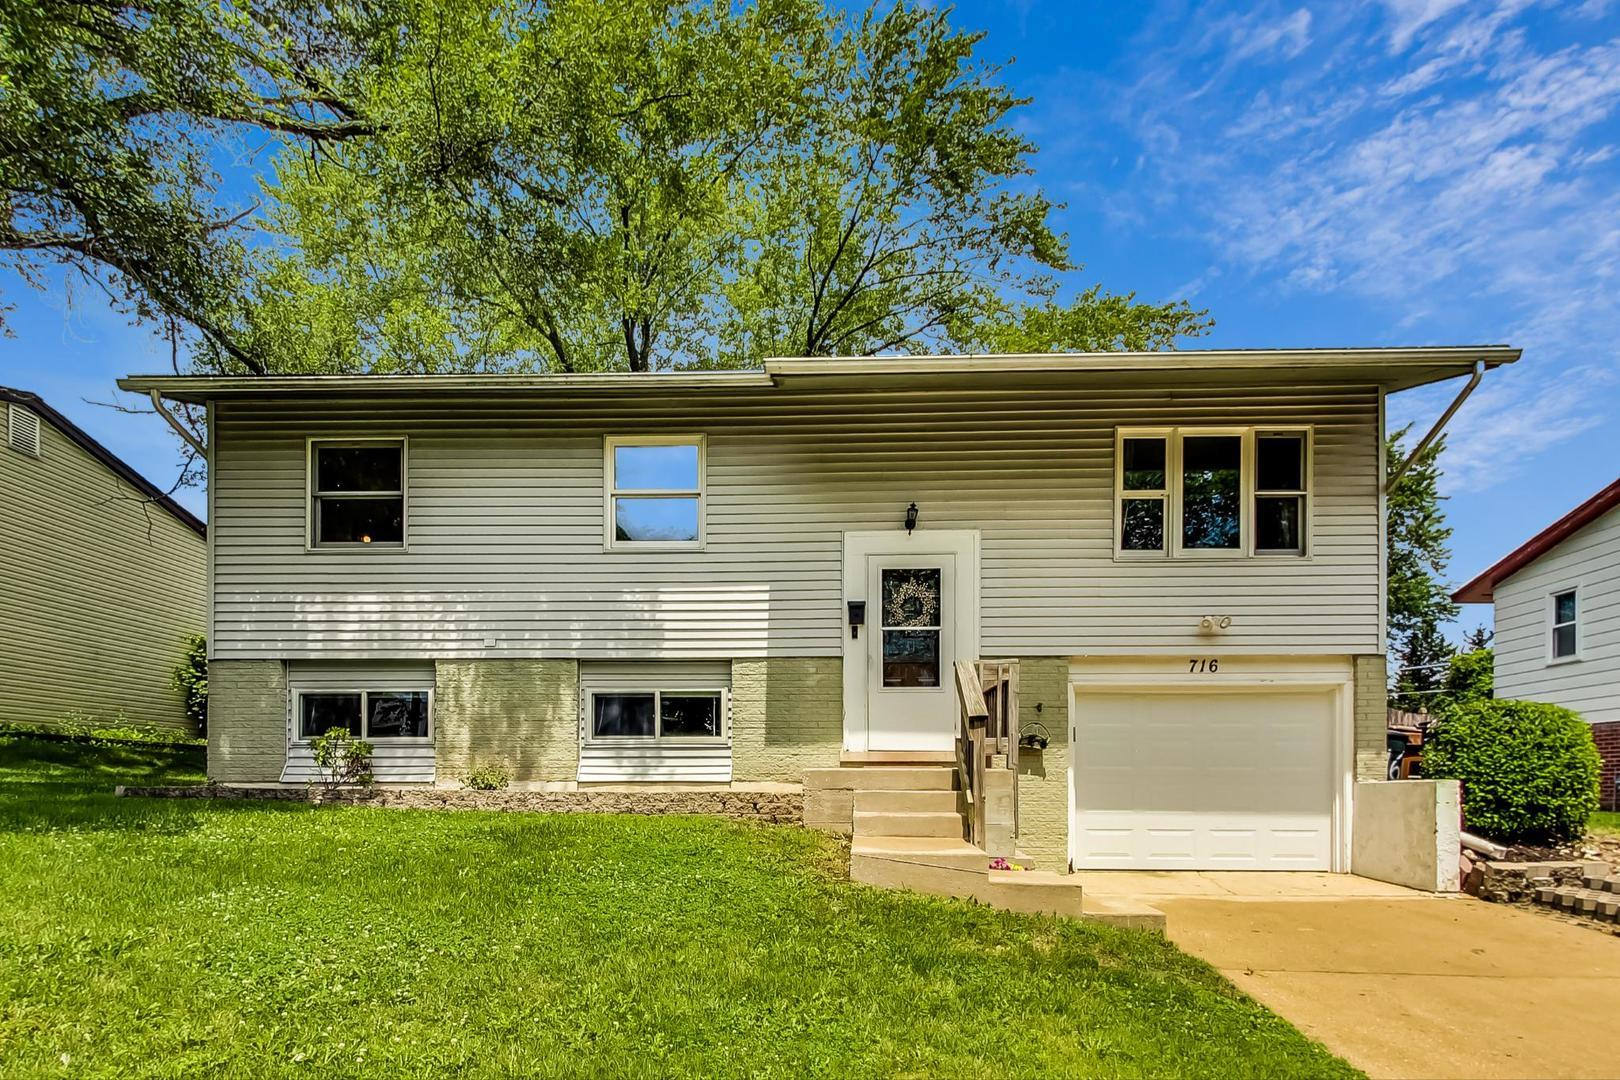 716 Terry Road, Glendale Heights, IL 60139 - #: 10818795